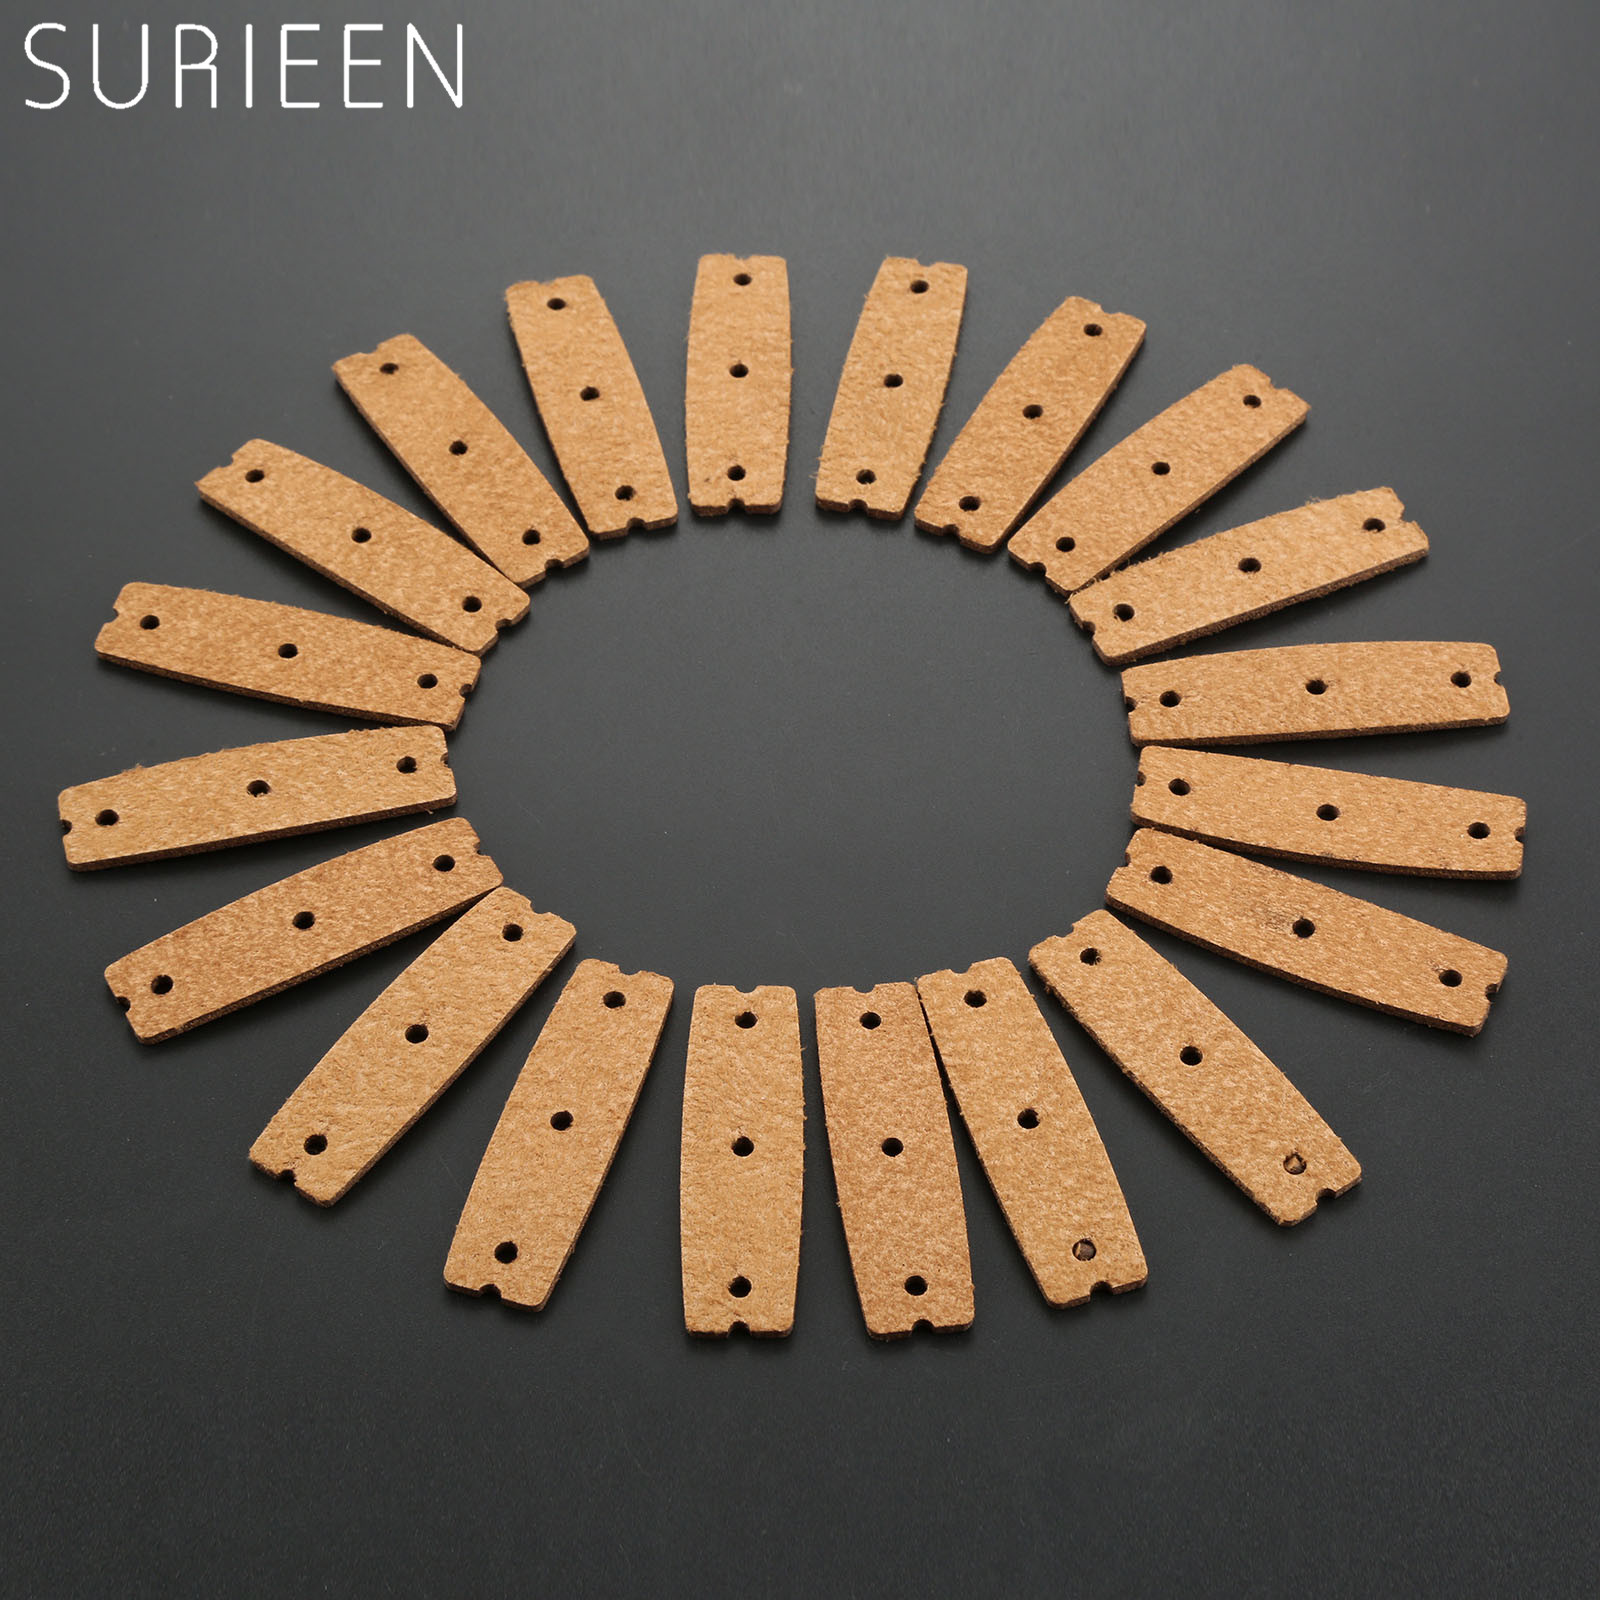 Brown 20pcs Slingshot Pouches Microfiber Leather with Multi Hole Outdoor Hunting Catapult Rubber Band Accessories 60mm*18mm*15mm